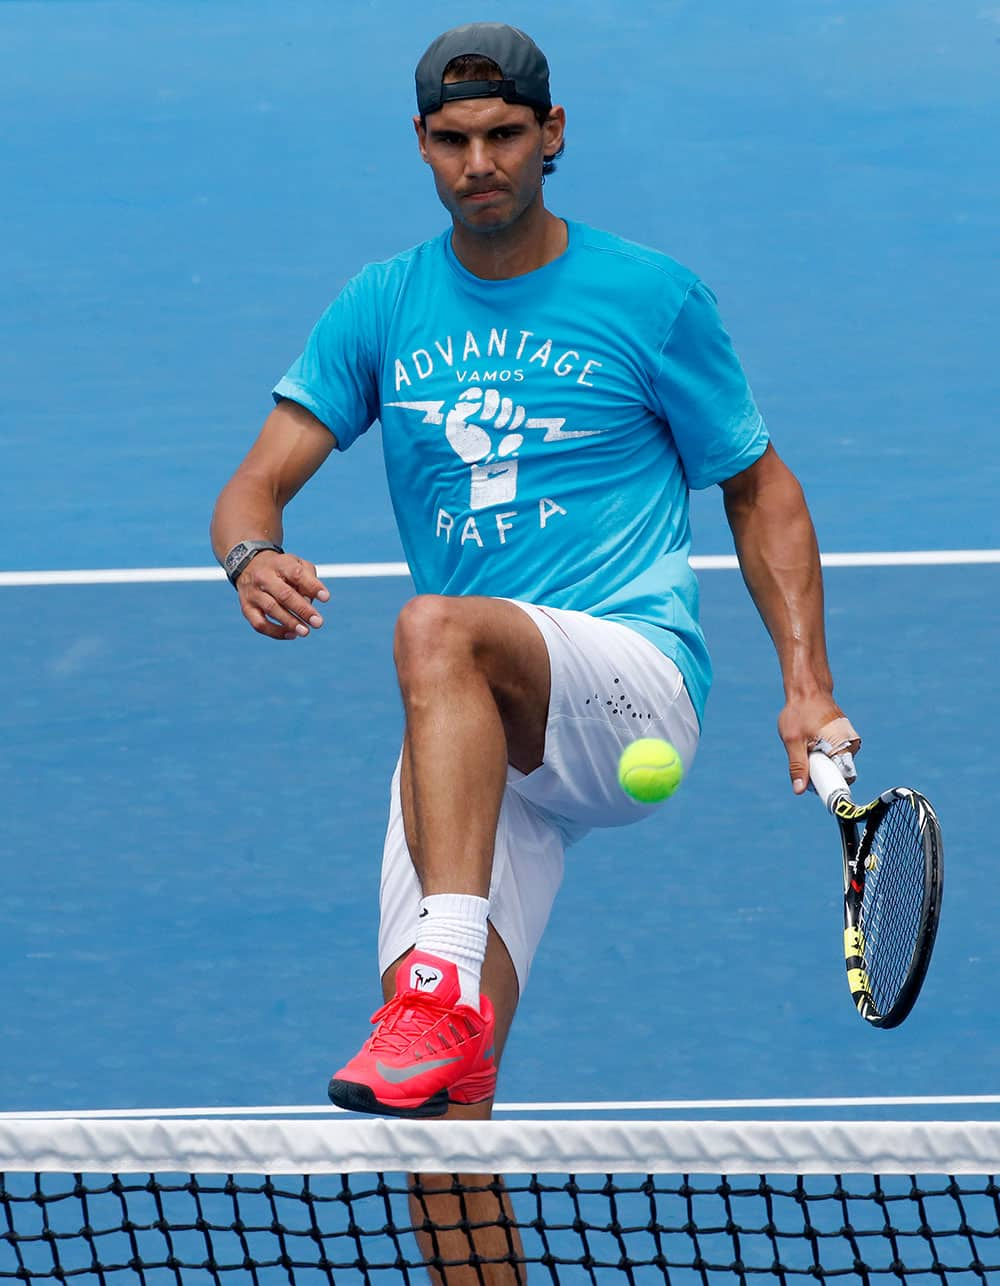 Rafael Nadal of Spain kicks the ball during a practice session ahead of the Australian Open tennis championship.